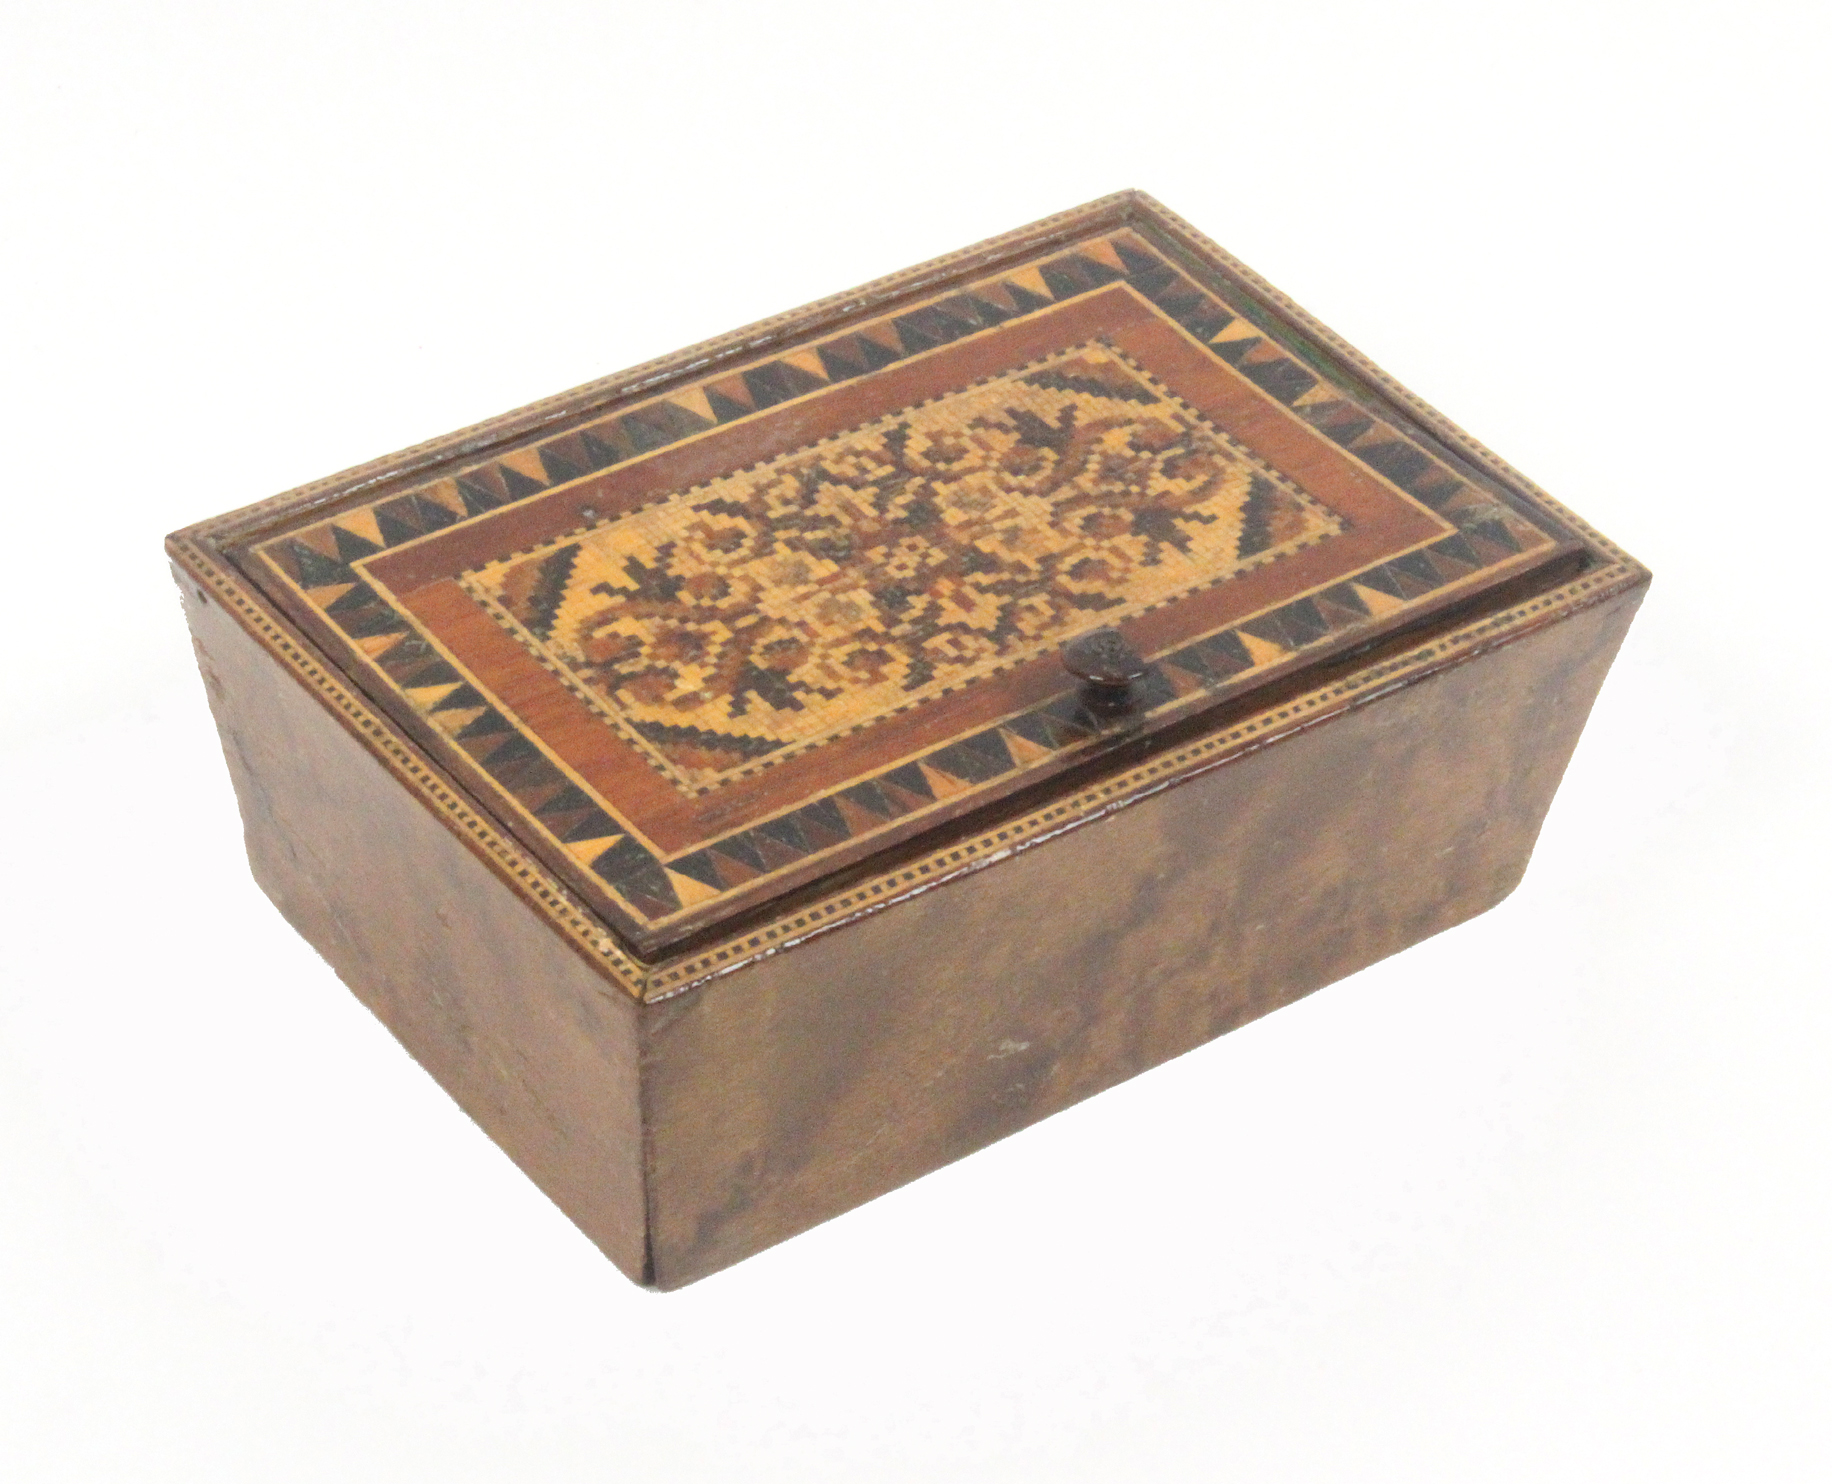 A Tunbridge ware box of rectangular form, with angled burr veneered sides, the pin hinge lid with